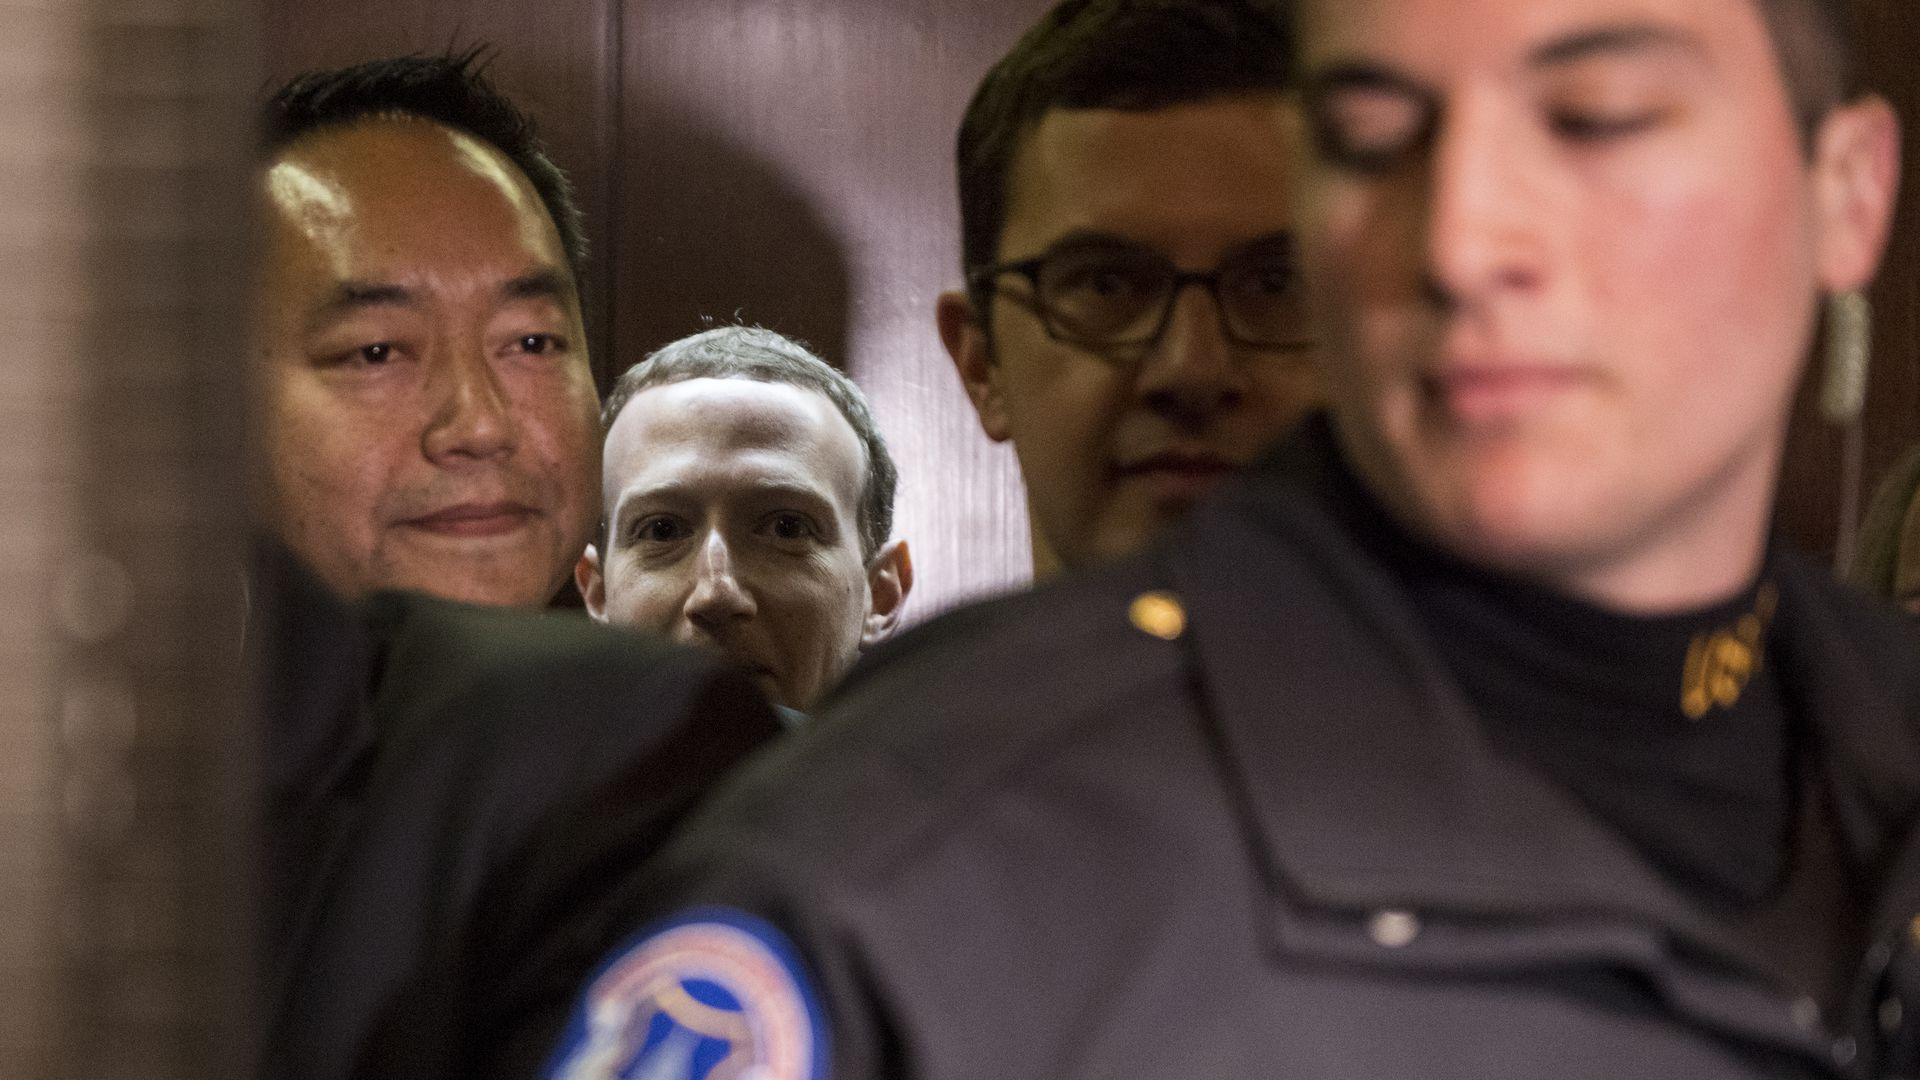 Mark Zuckerberg's face is half visible amid a group of other people